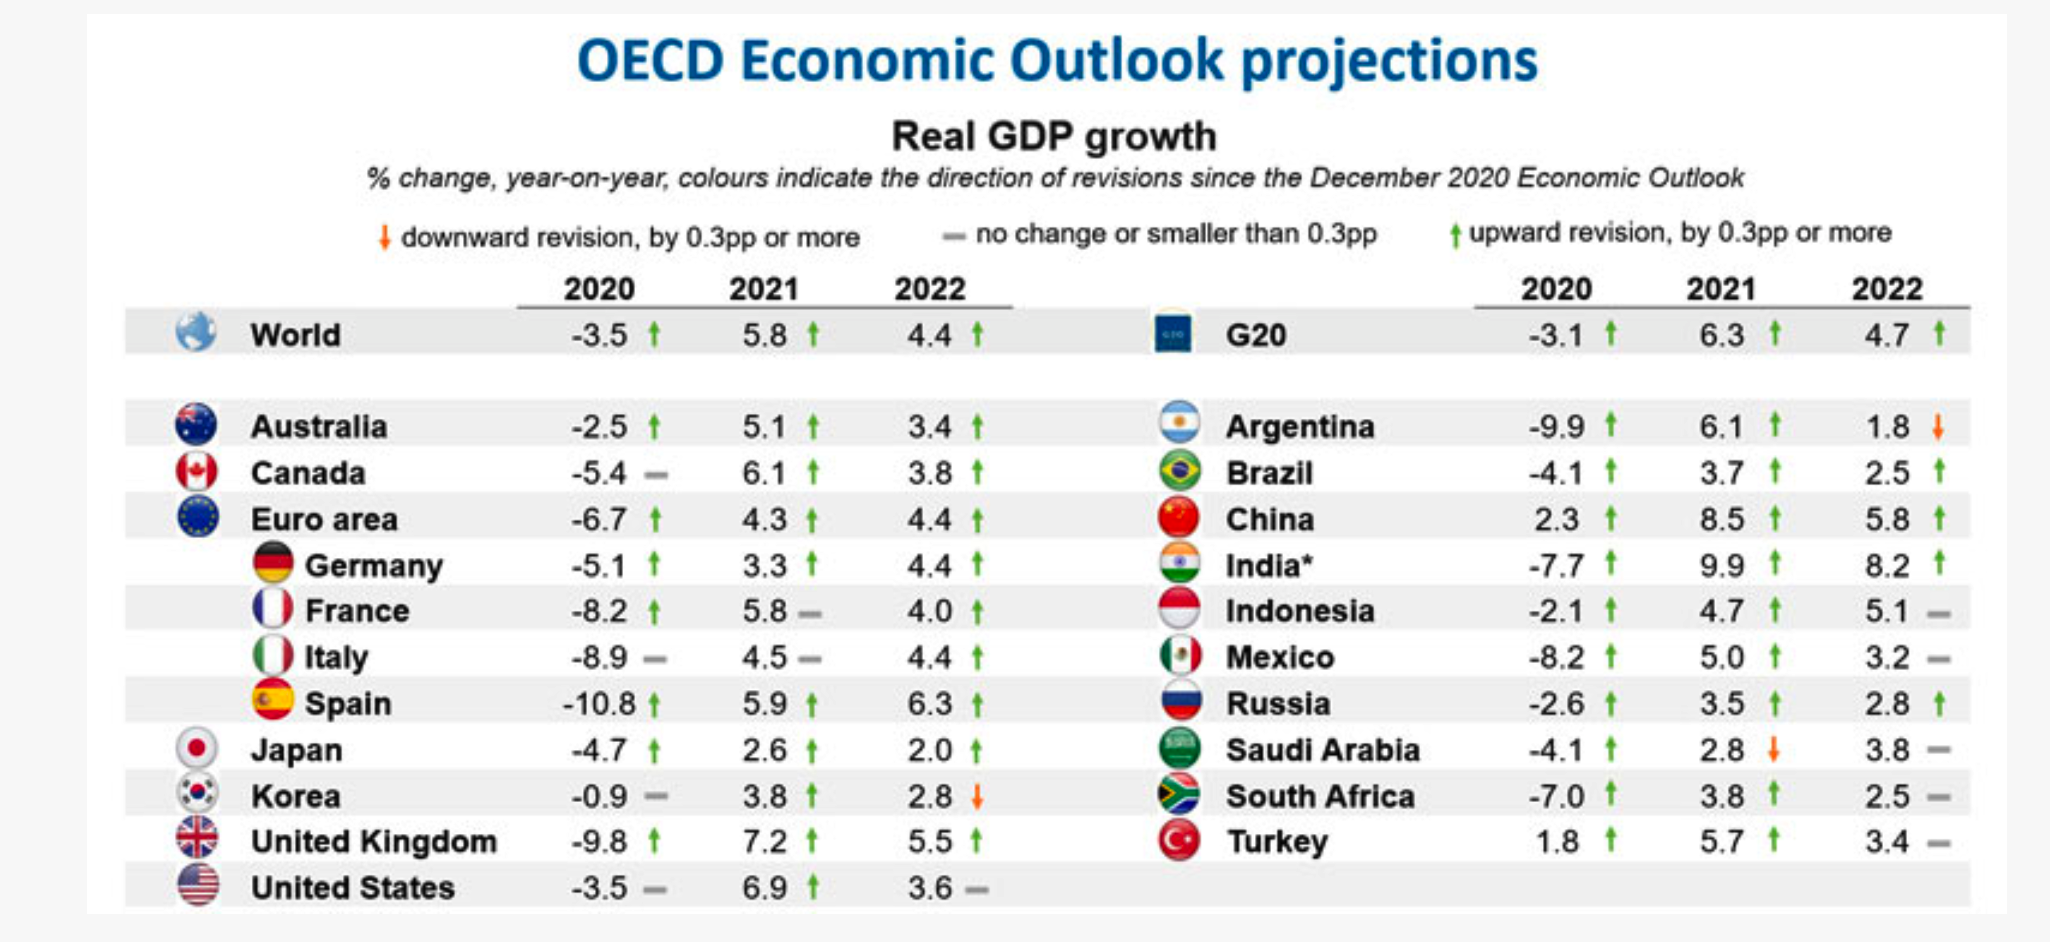 OECD projections